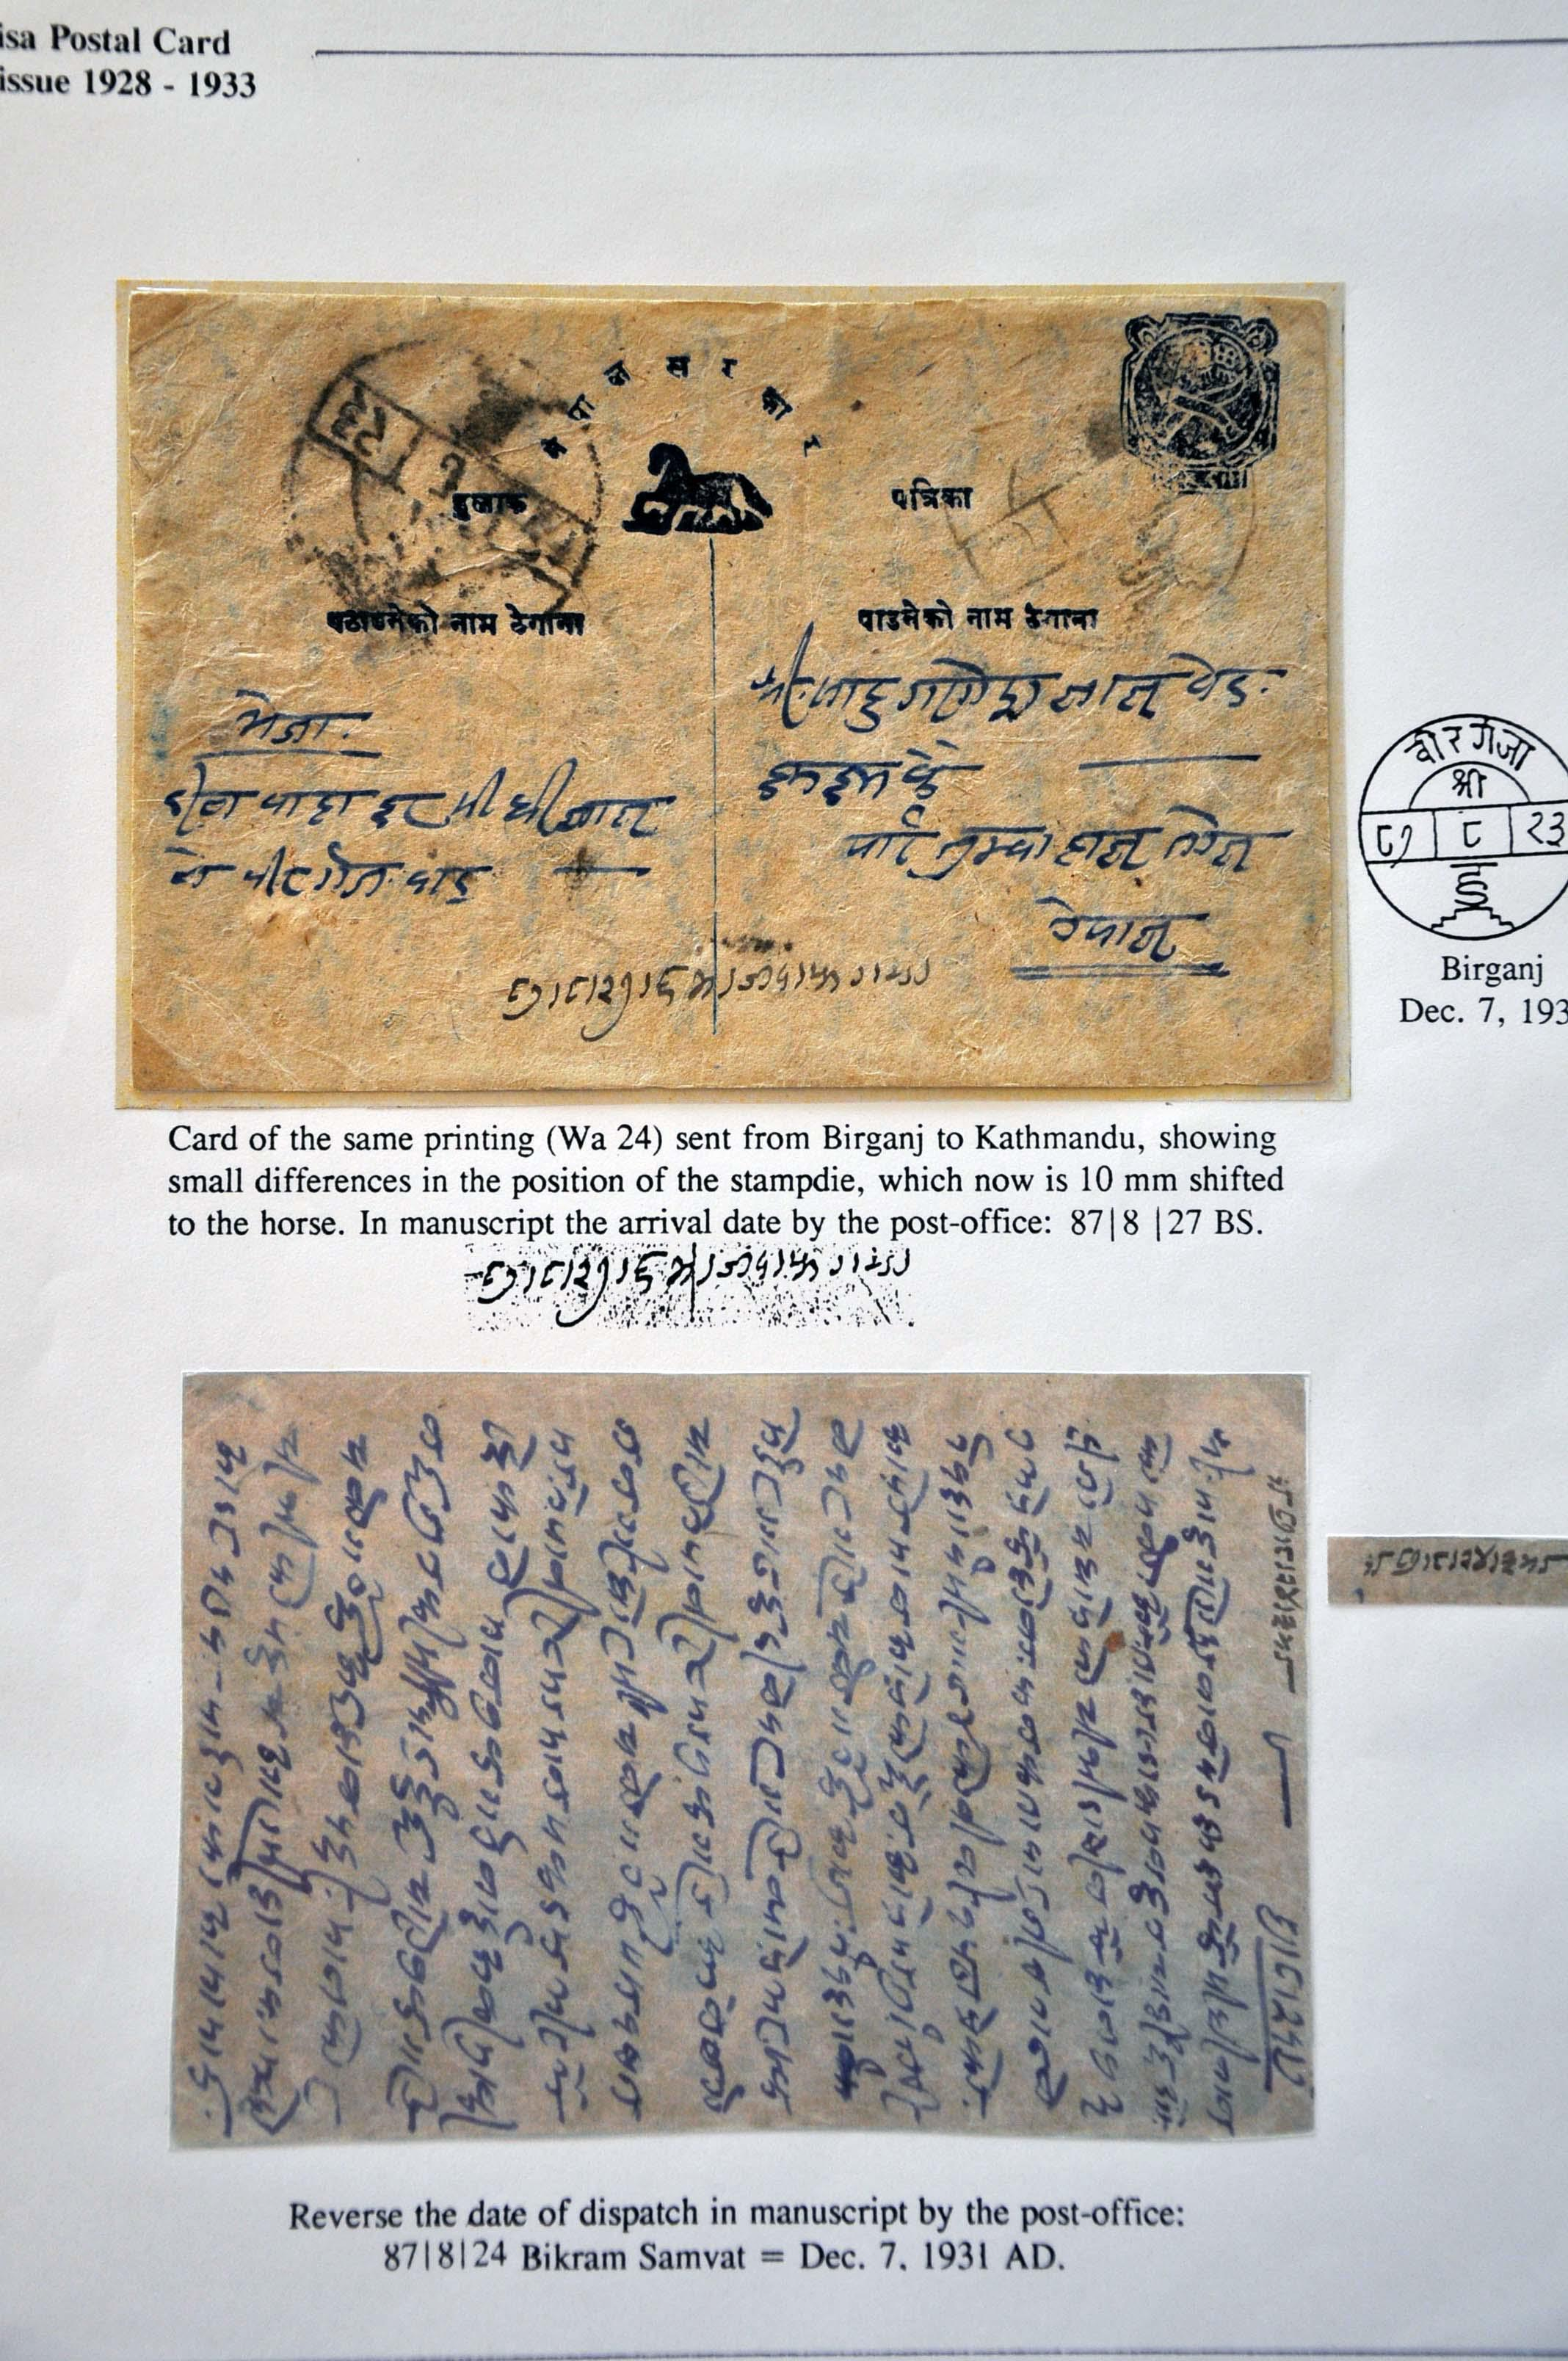 Lot 45 - Great Britain and former colonies Nepal -  Corinphila Veilingen Auction 245-246 Day 1 - Nepal - The Dick van der Wateren Collection, Foreign countries - Single lots, Picture postcards